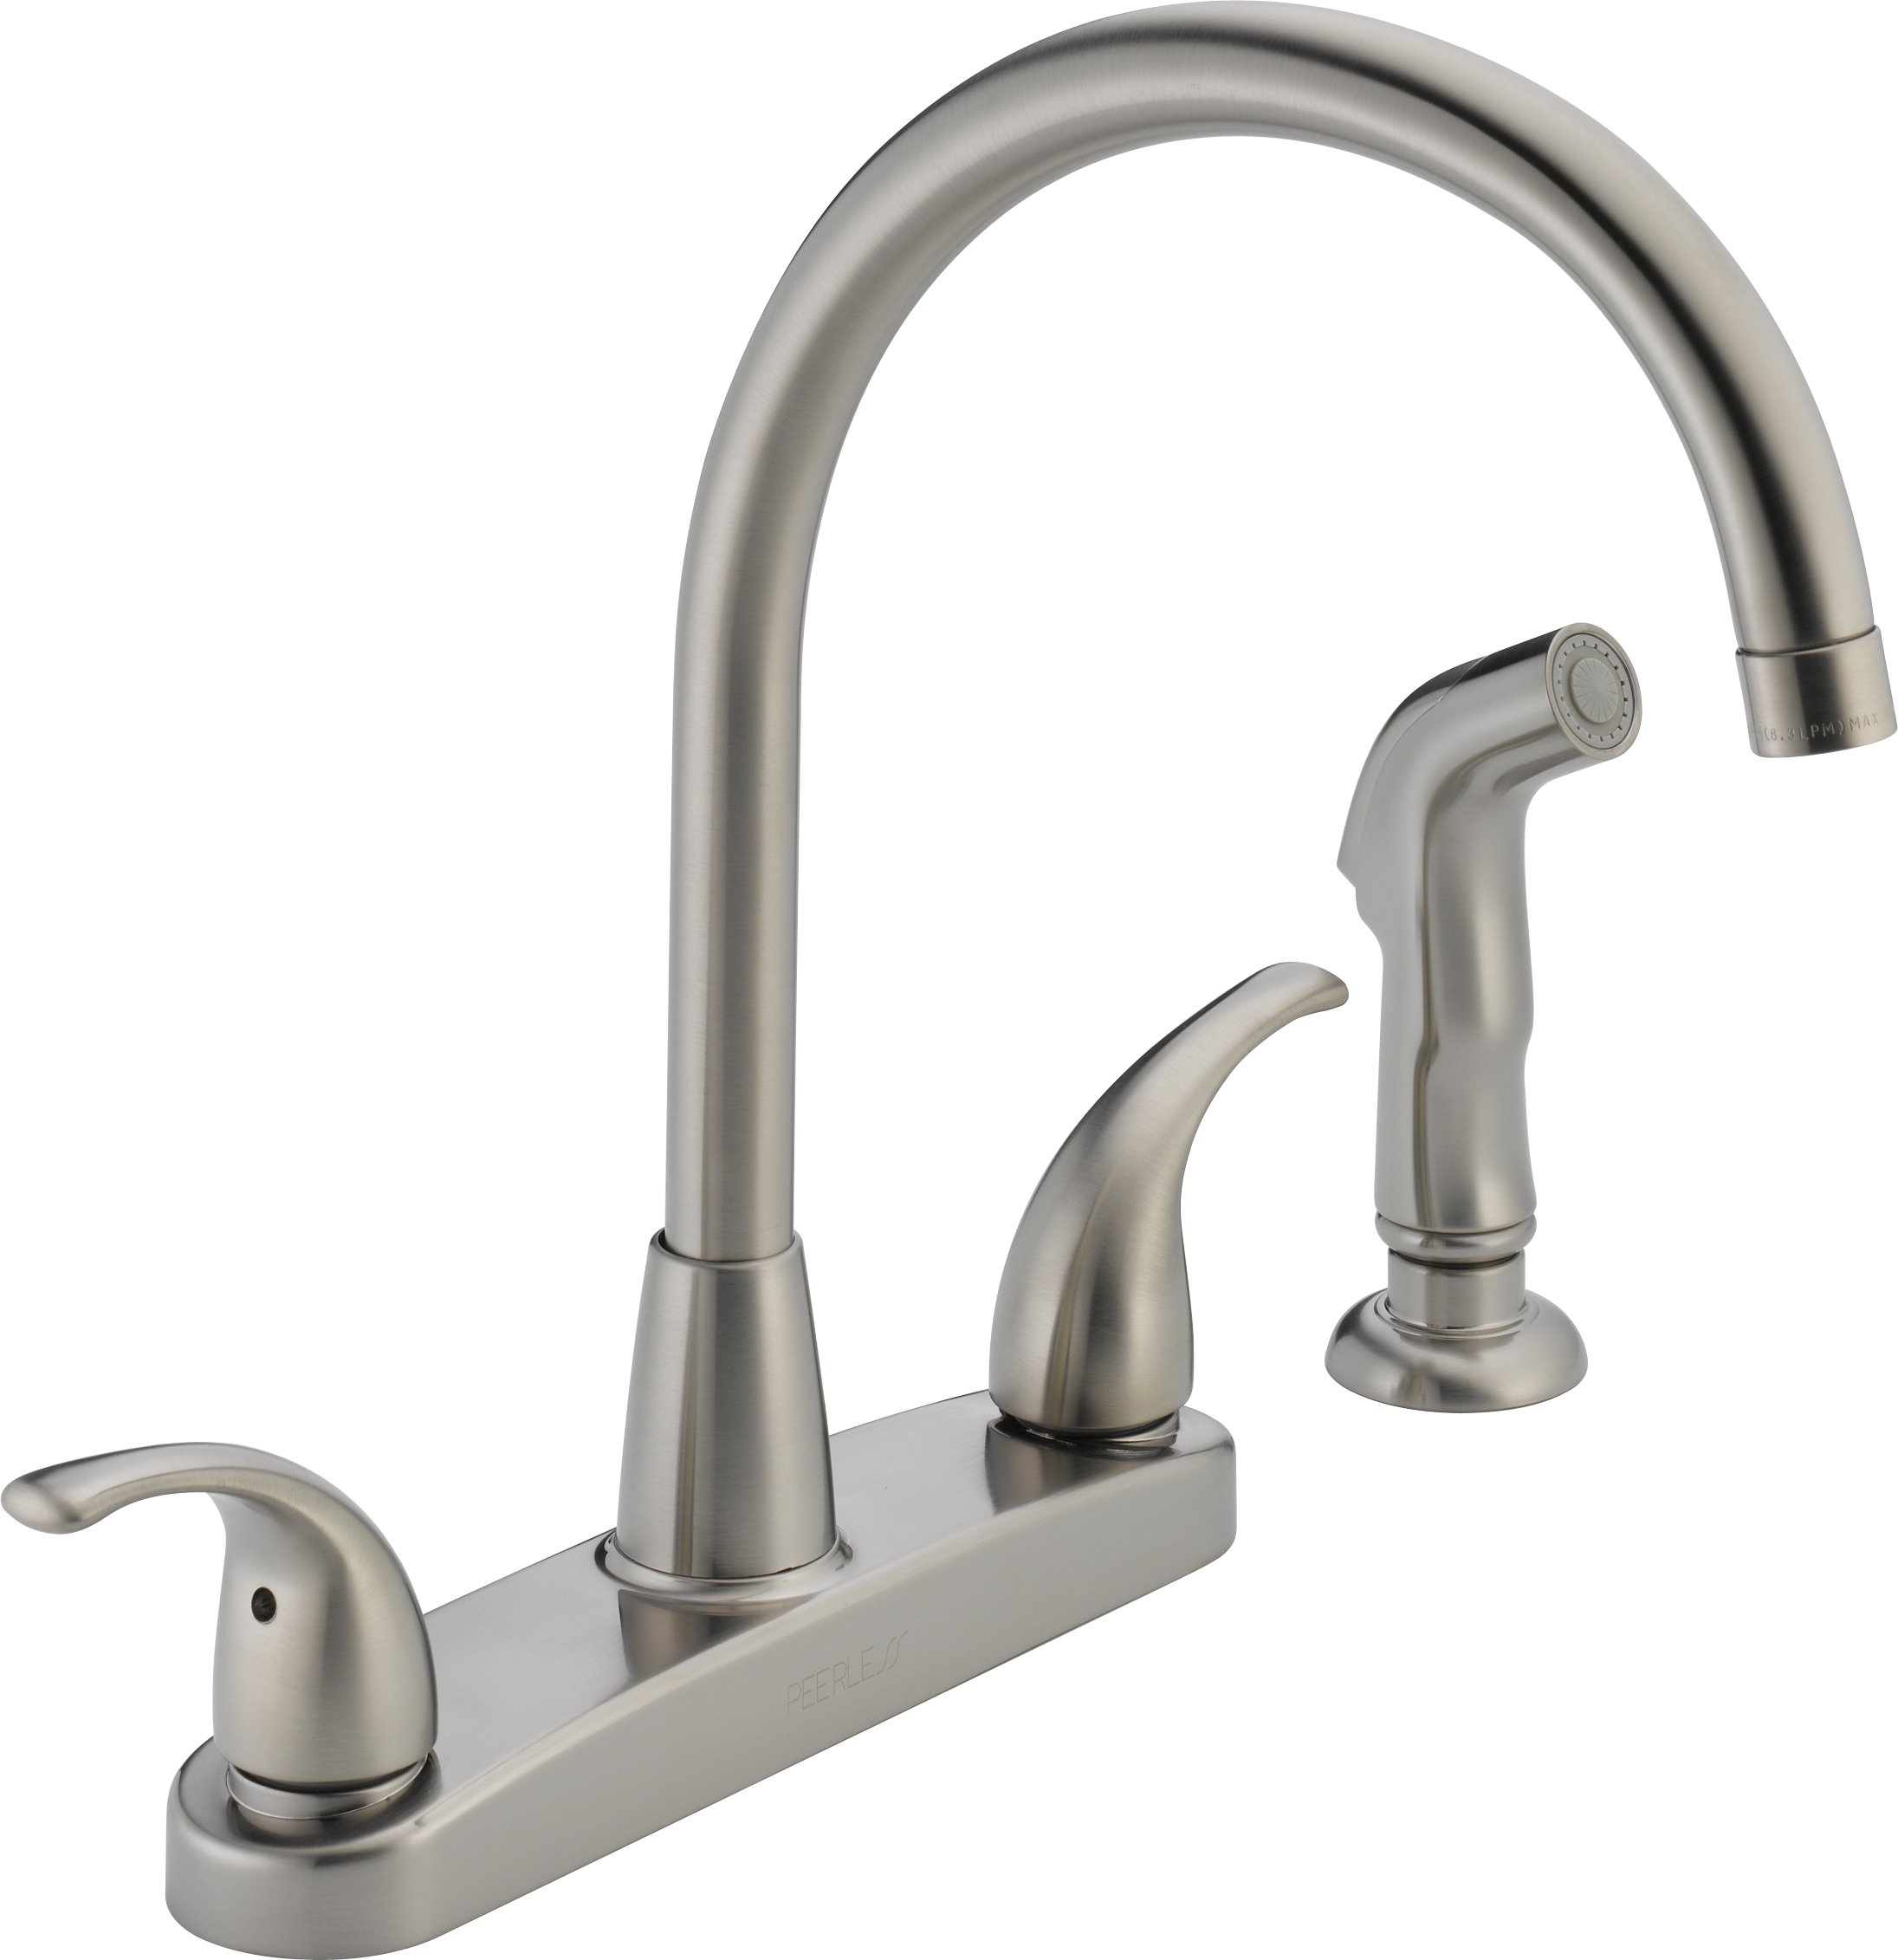 Peerless p299578lf ss choice two handle kitchen faucet stainless steel